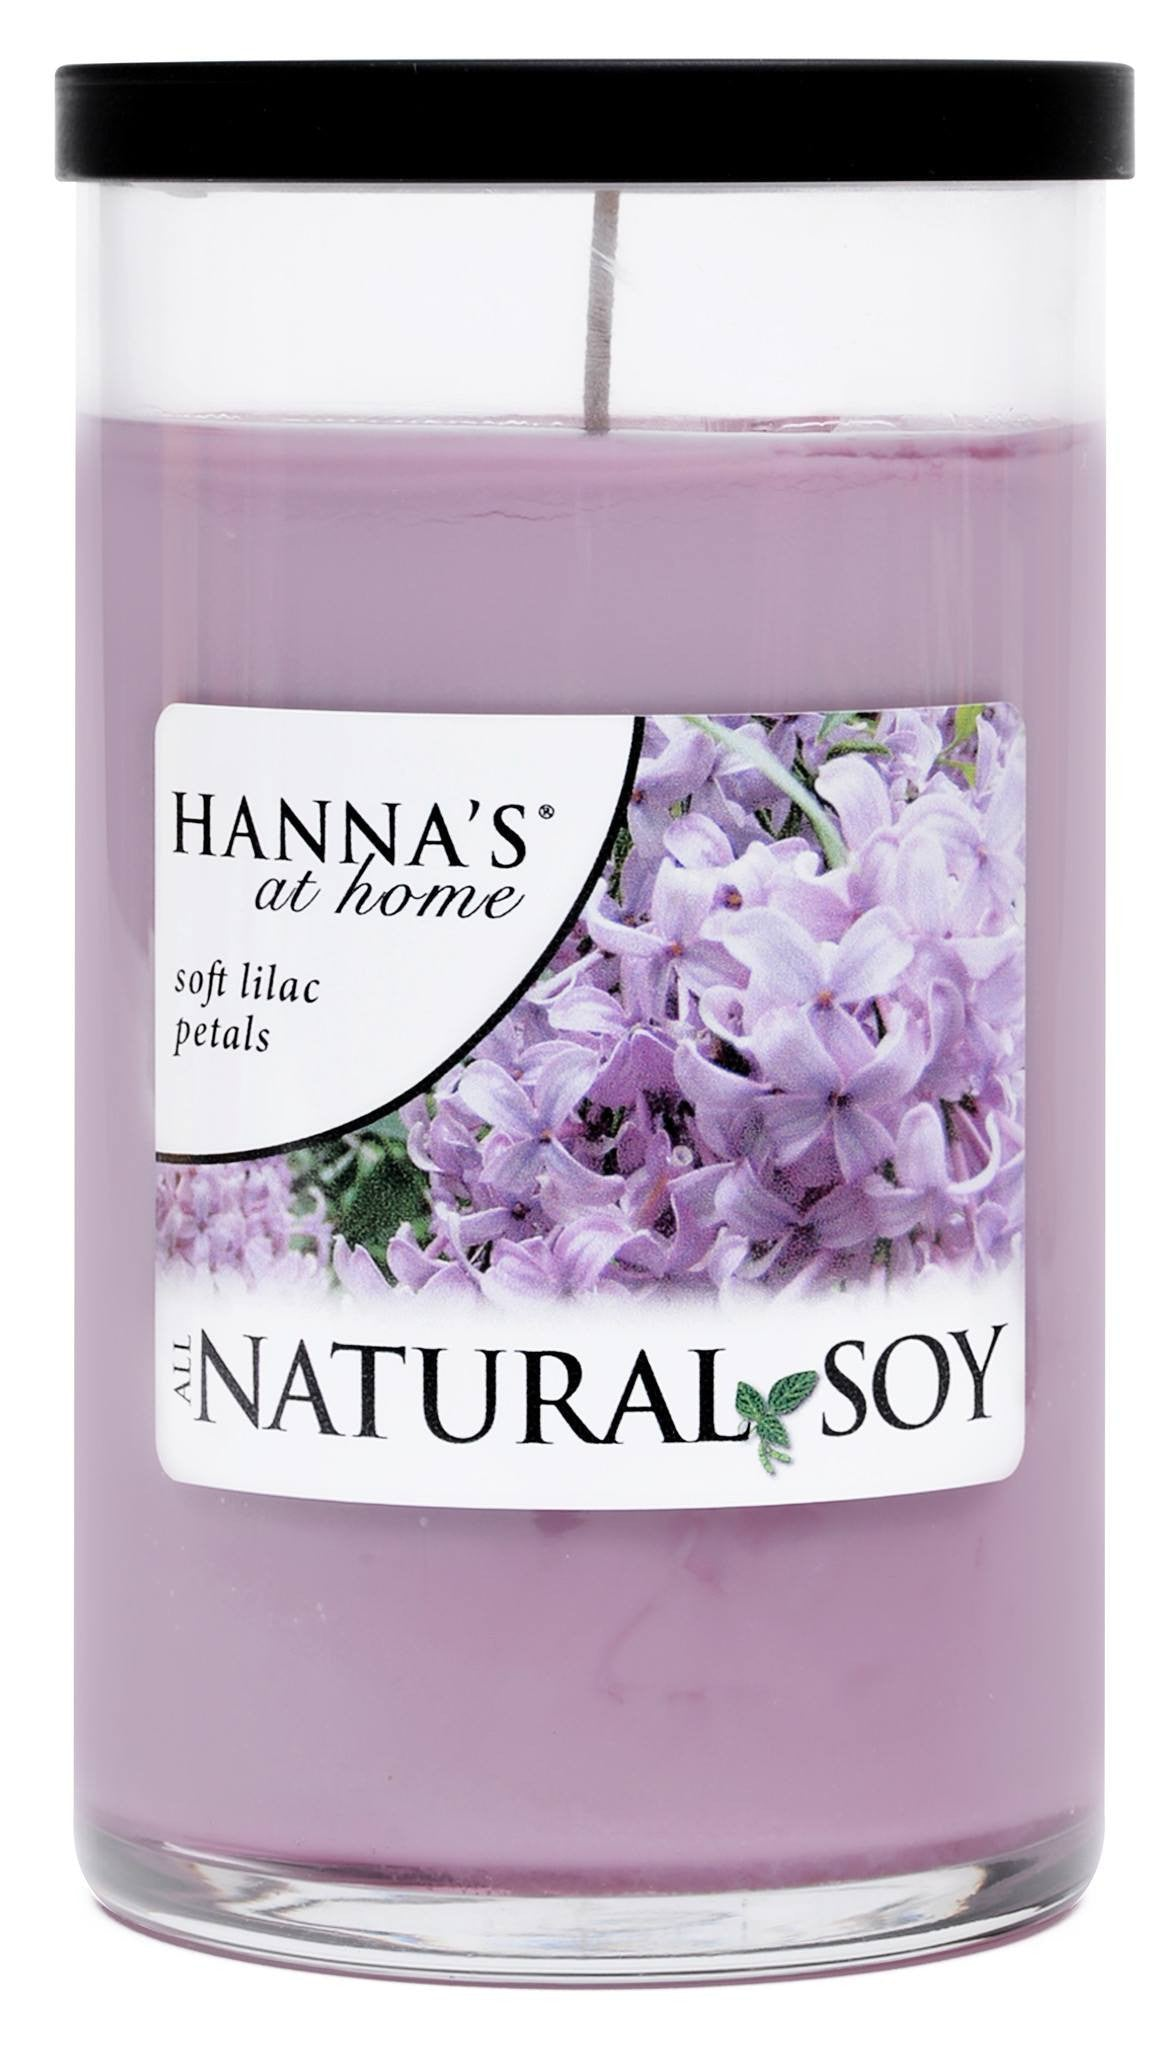 Natural Soy Soft Lilac Petals Scented Soy Candle - Candlemart.com - 2